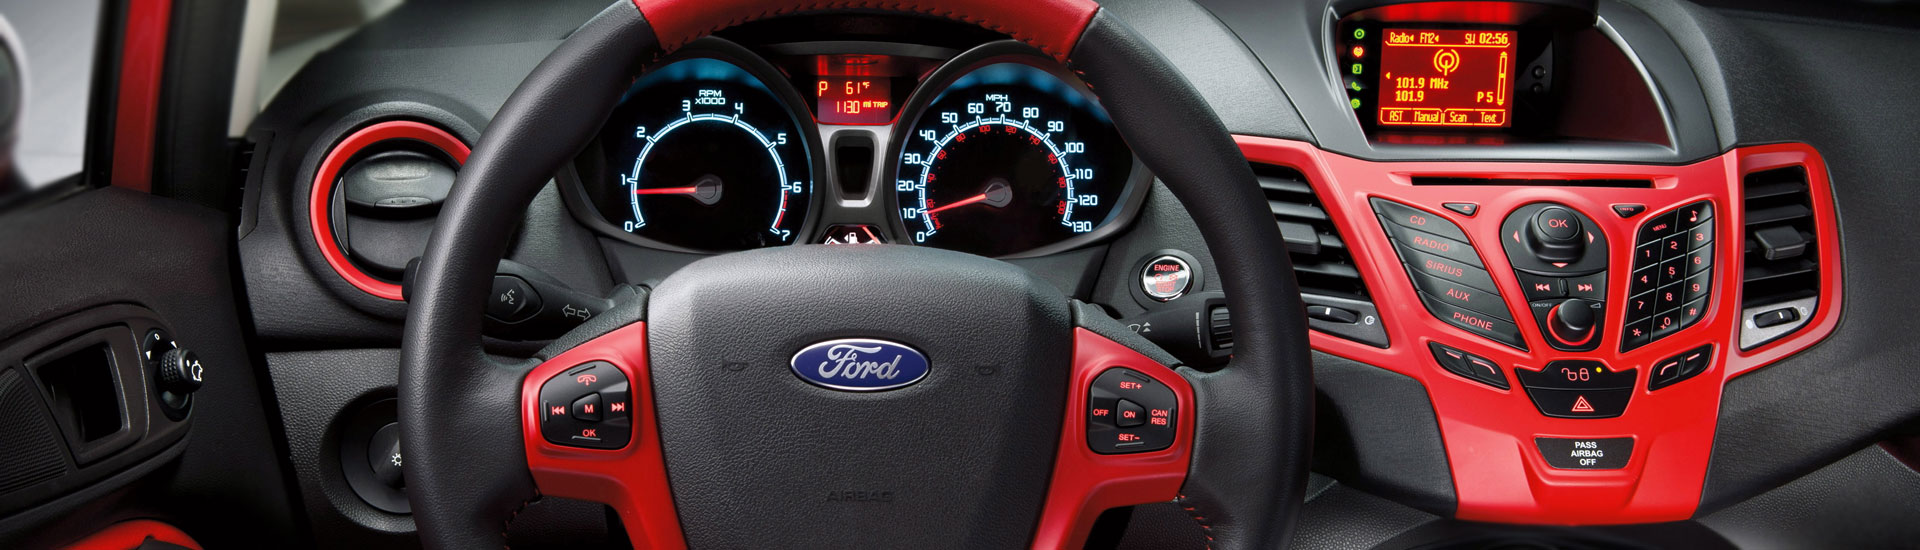 2012 Ford Edge Custom Dash Kits